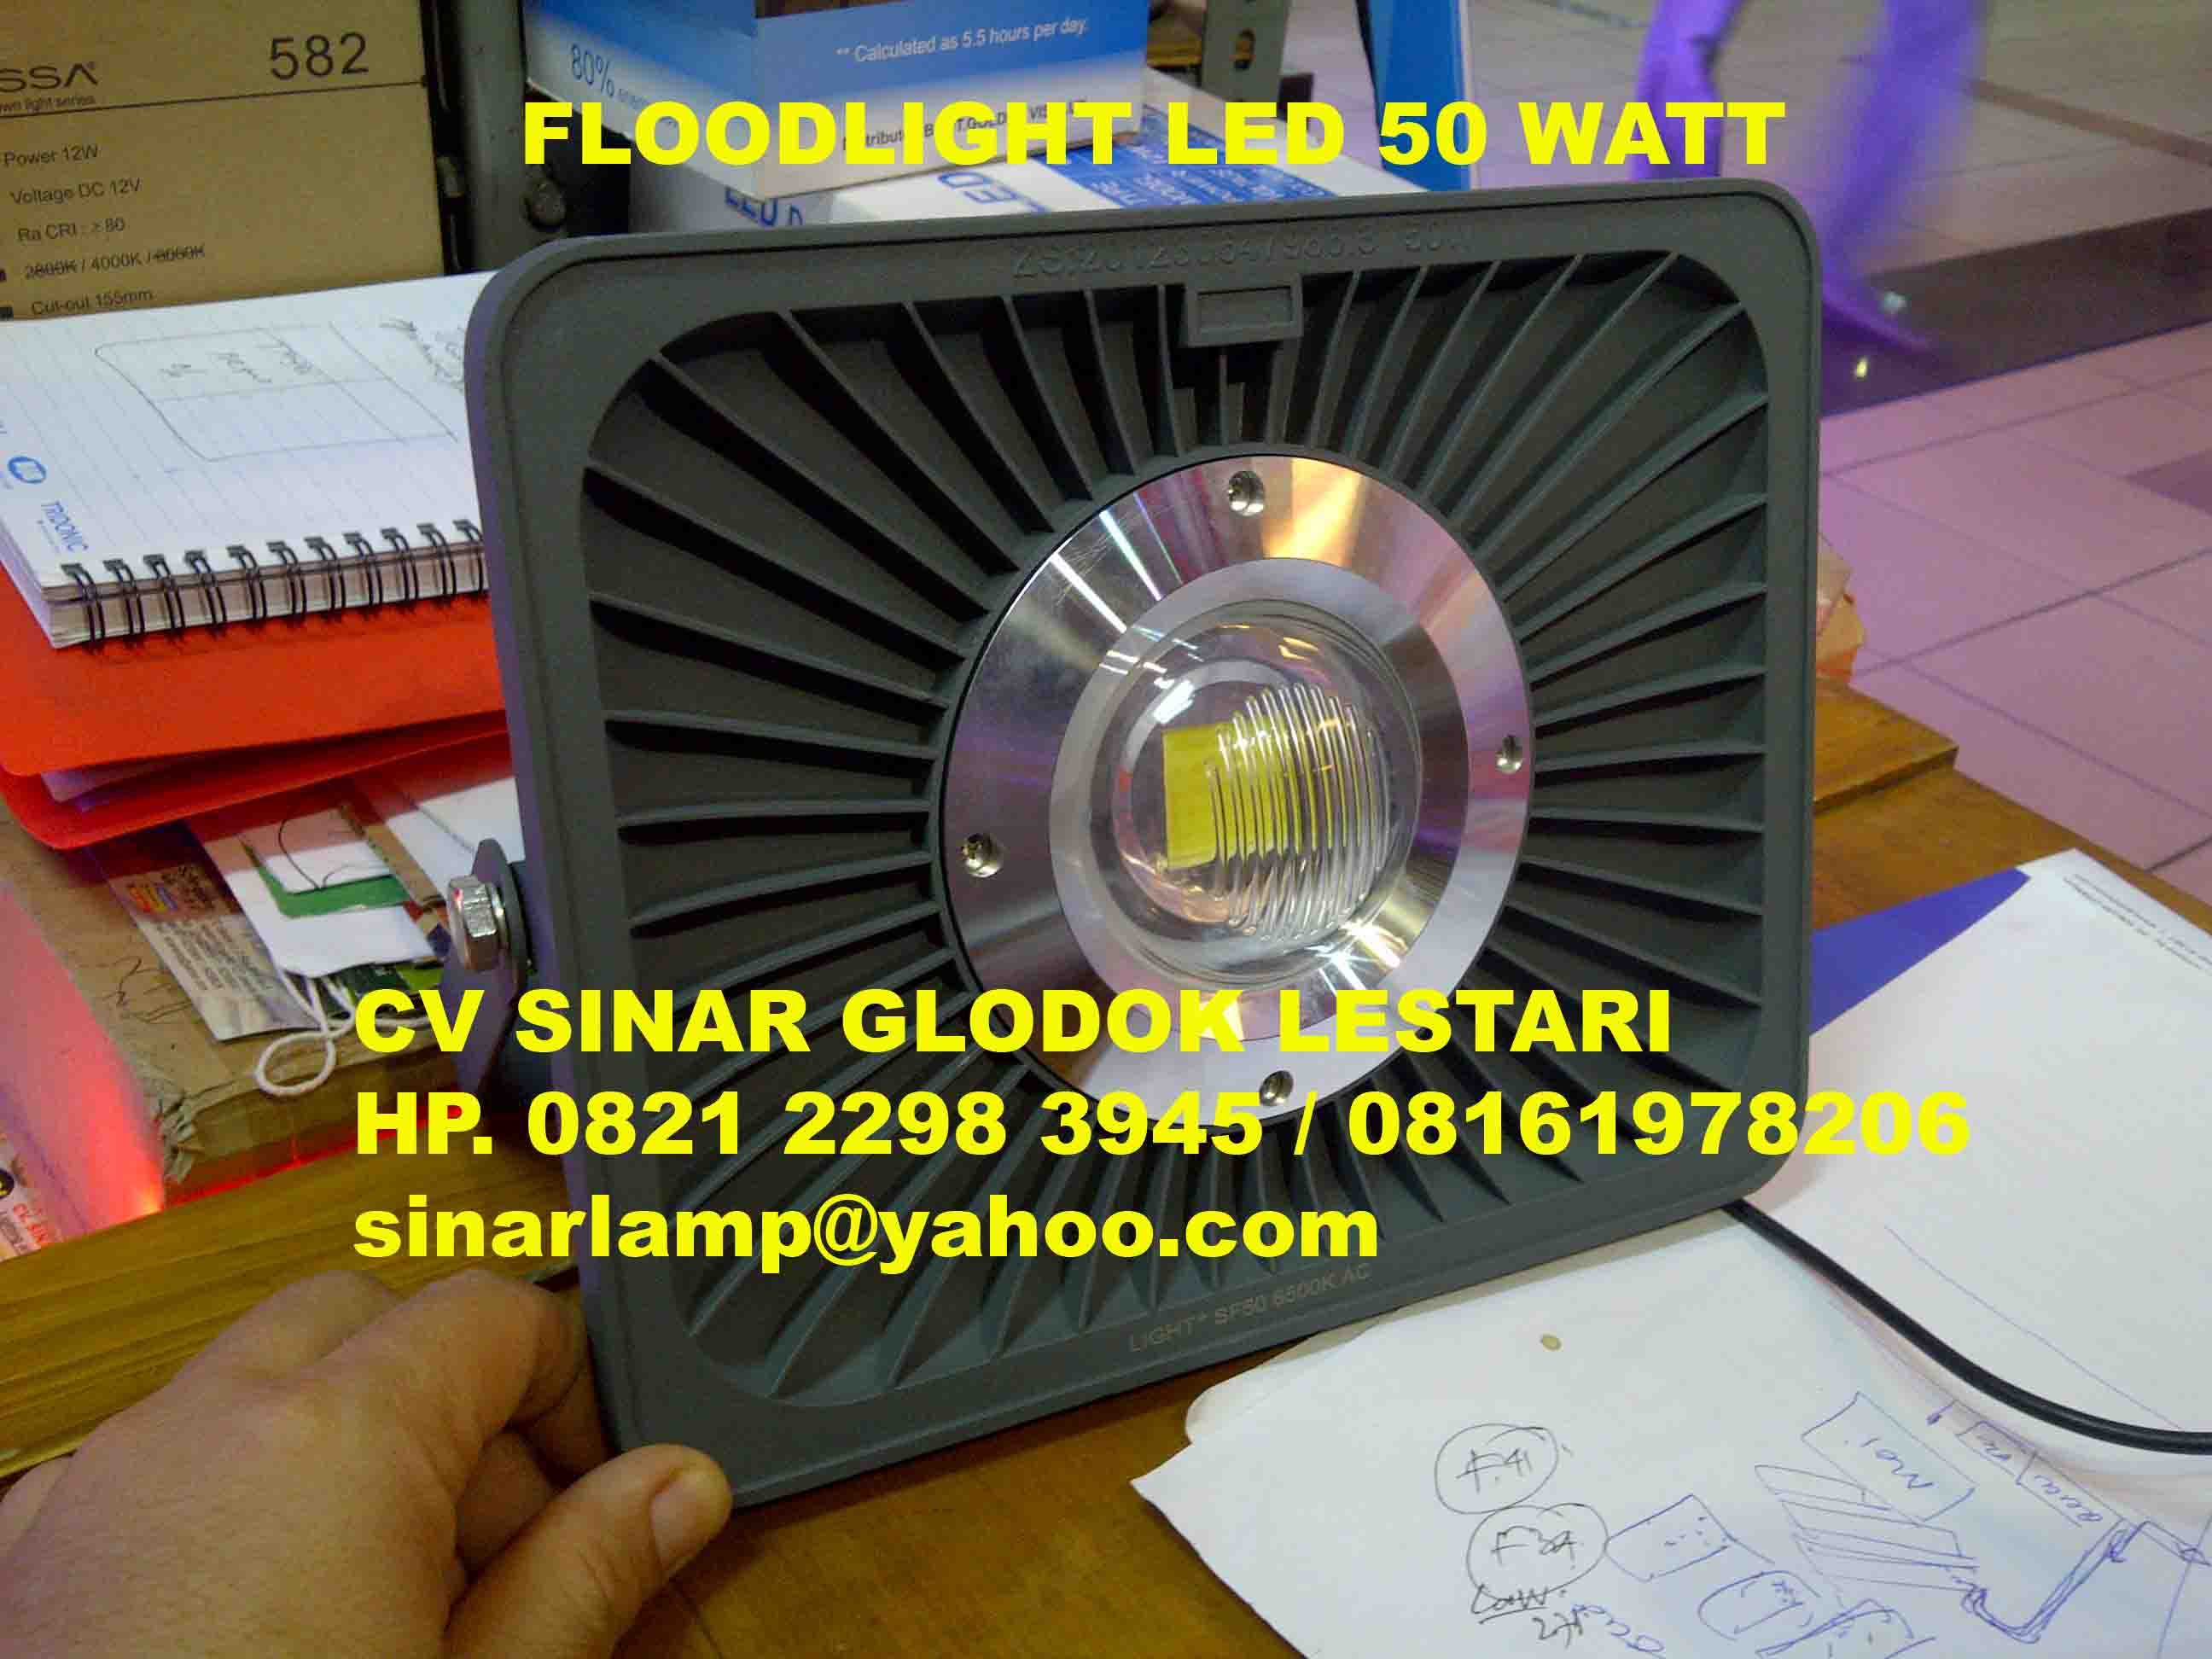 Lampu Sorot LED Spider 50 watt